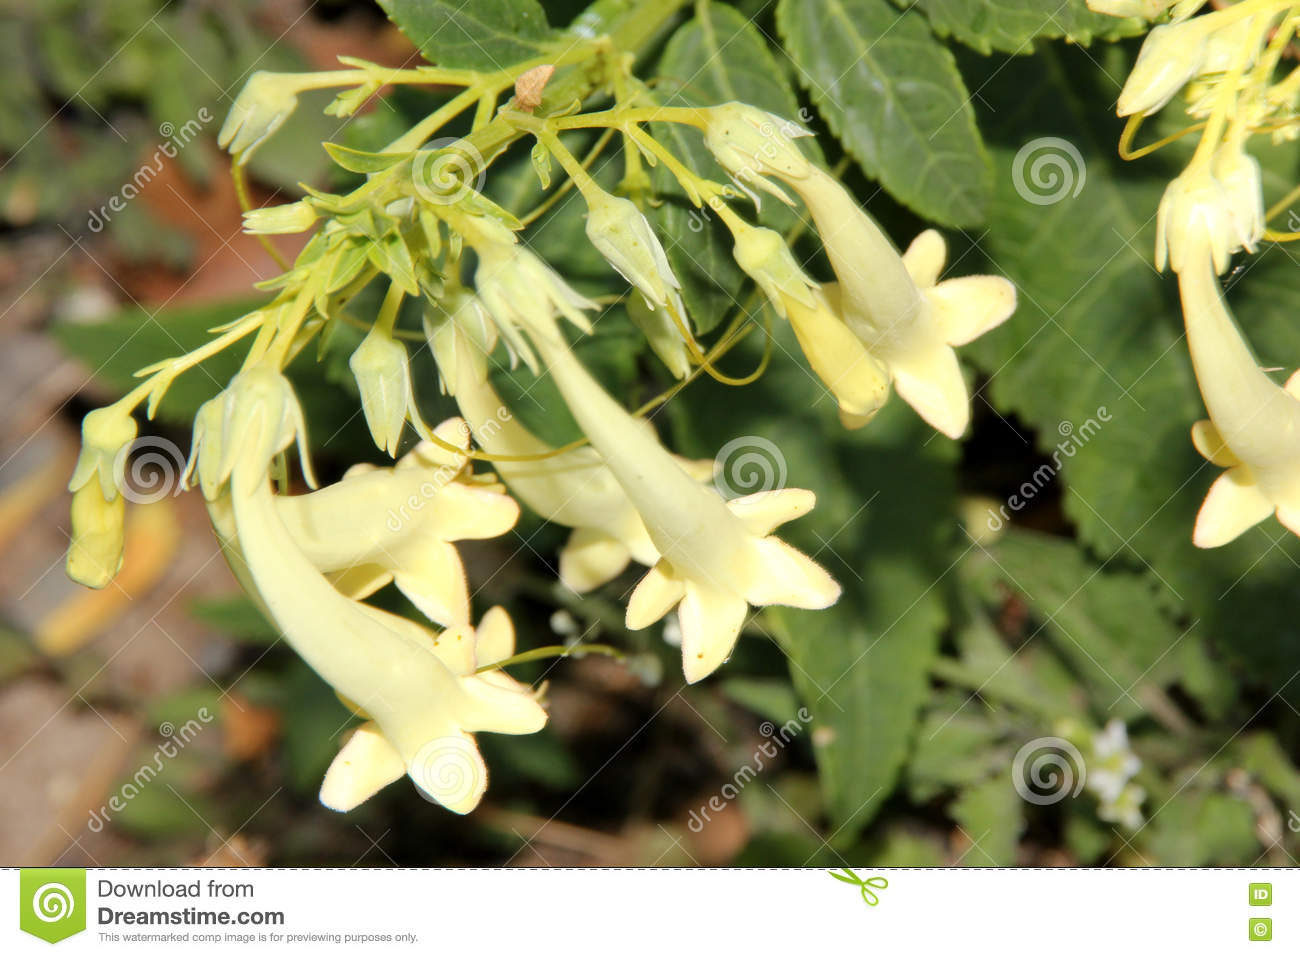 Phygelius aequalis yellow trumpet cape fuchsia stock photo phygelius aequalis yellow trumpet cape fuchsia hardy perennial with green leaves and cream yellow fuchsia like tubular flowers in one sided hanging mightylinksfo